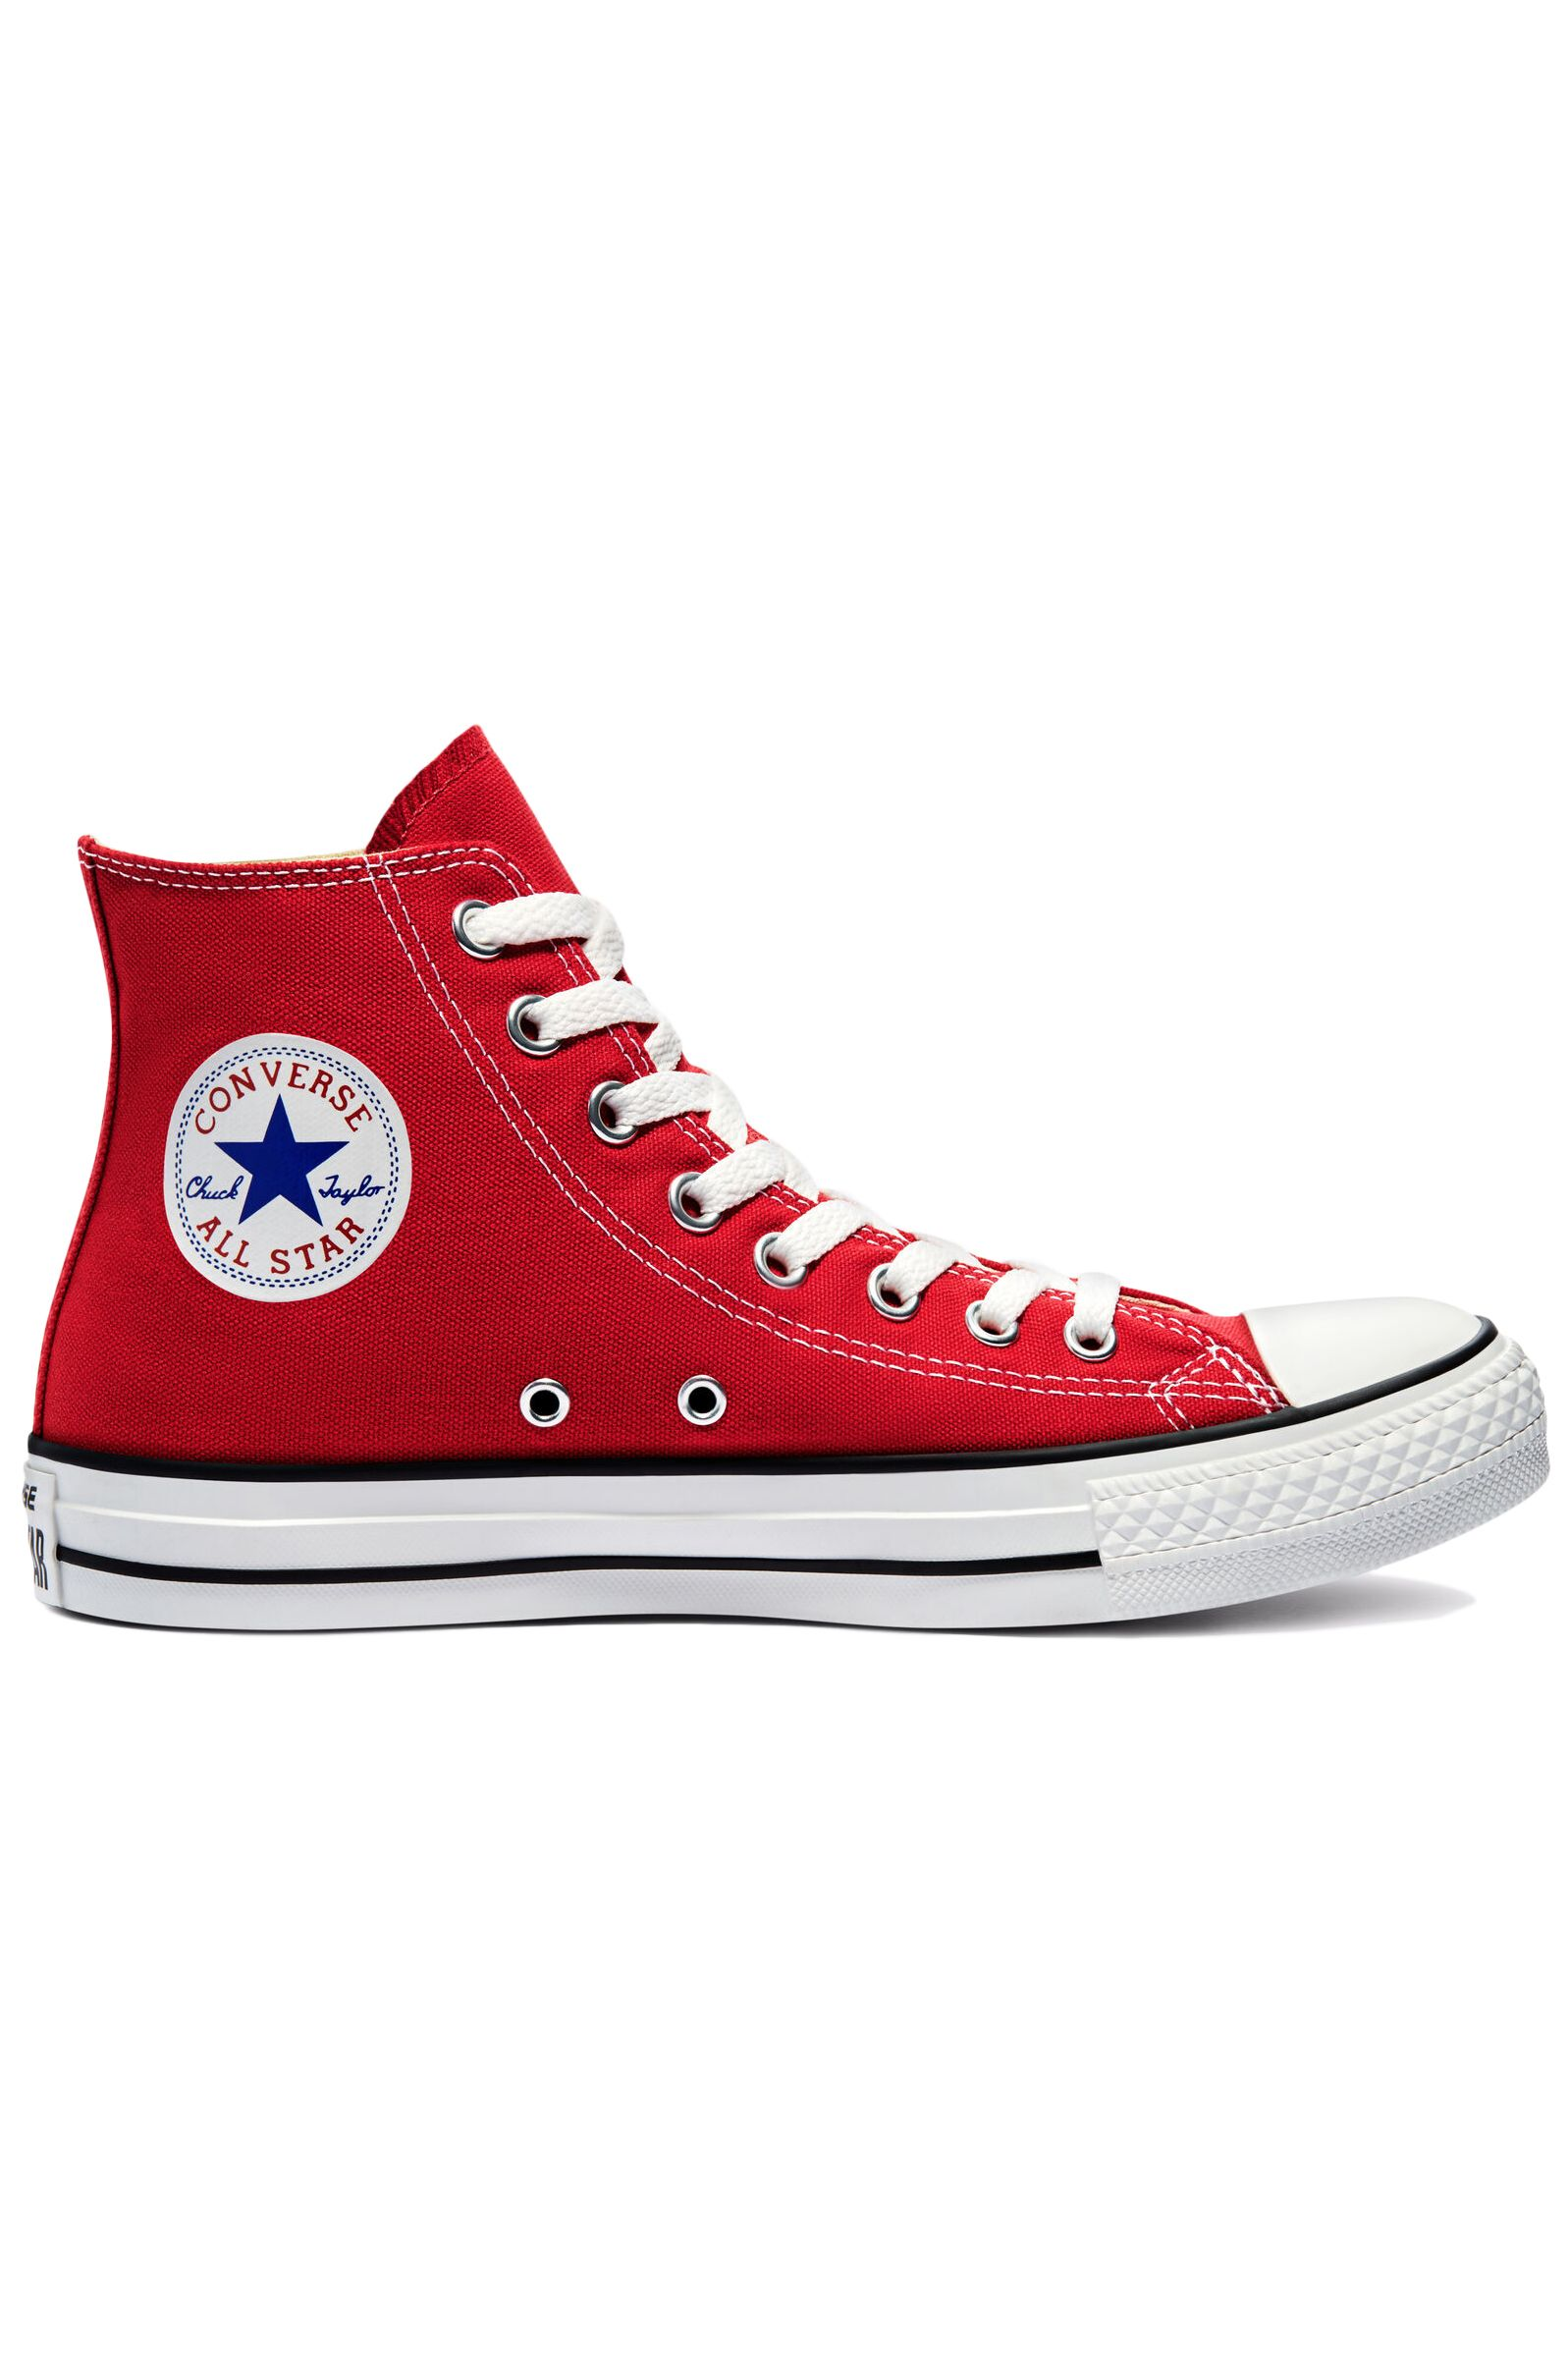 Converse Shoes CHUCK TAYLOR ALL STAR HI Red